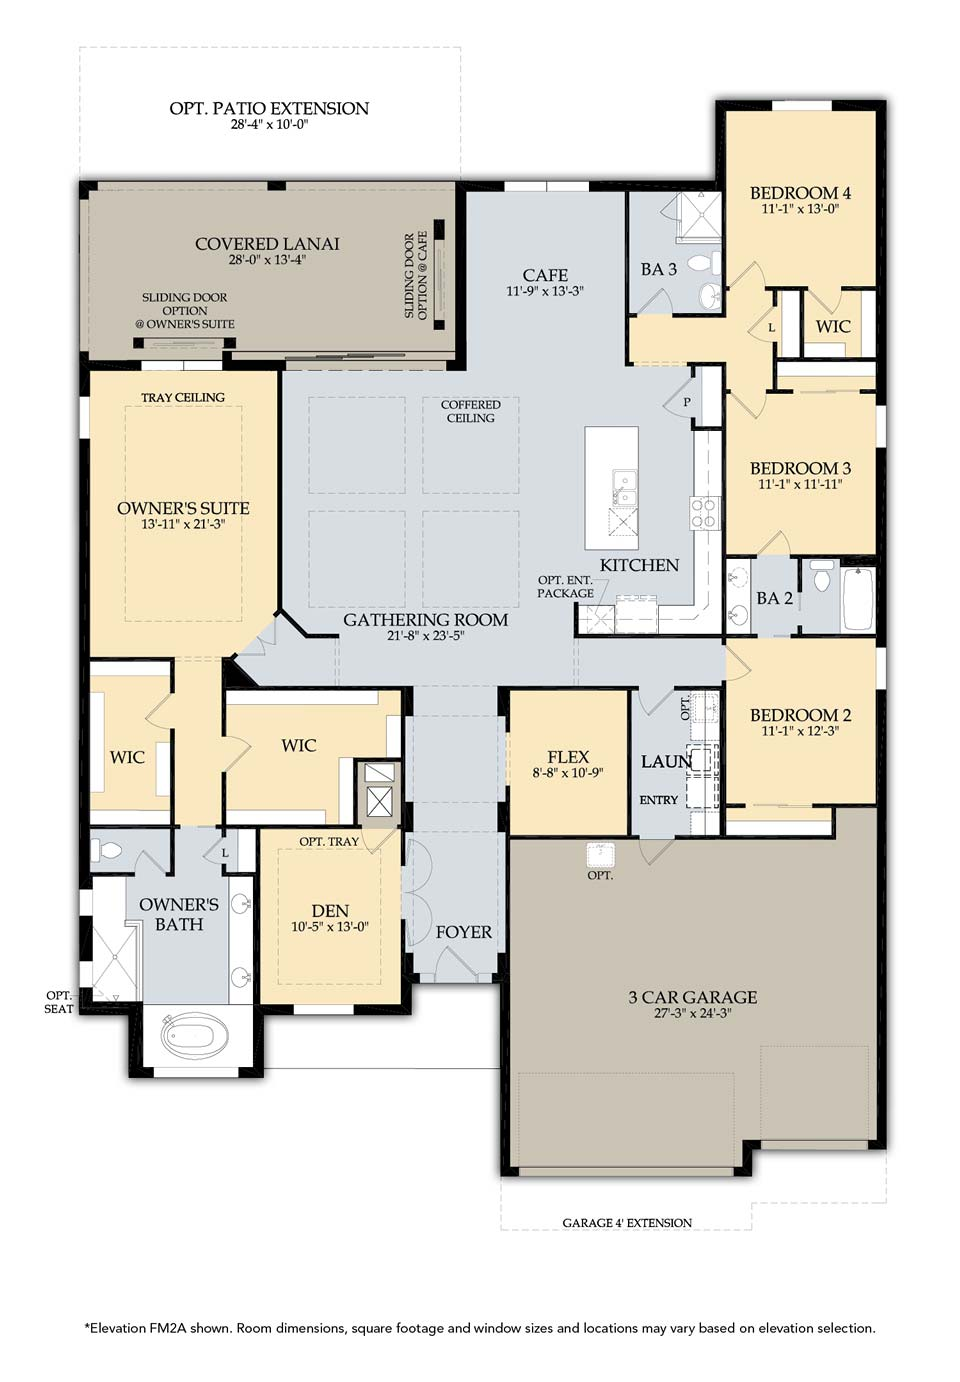 Pulte homes floor plans 2005 pulte homes floor plans for Homes with floor plans